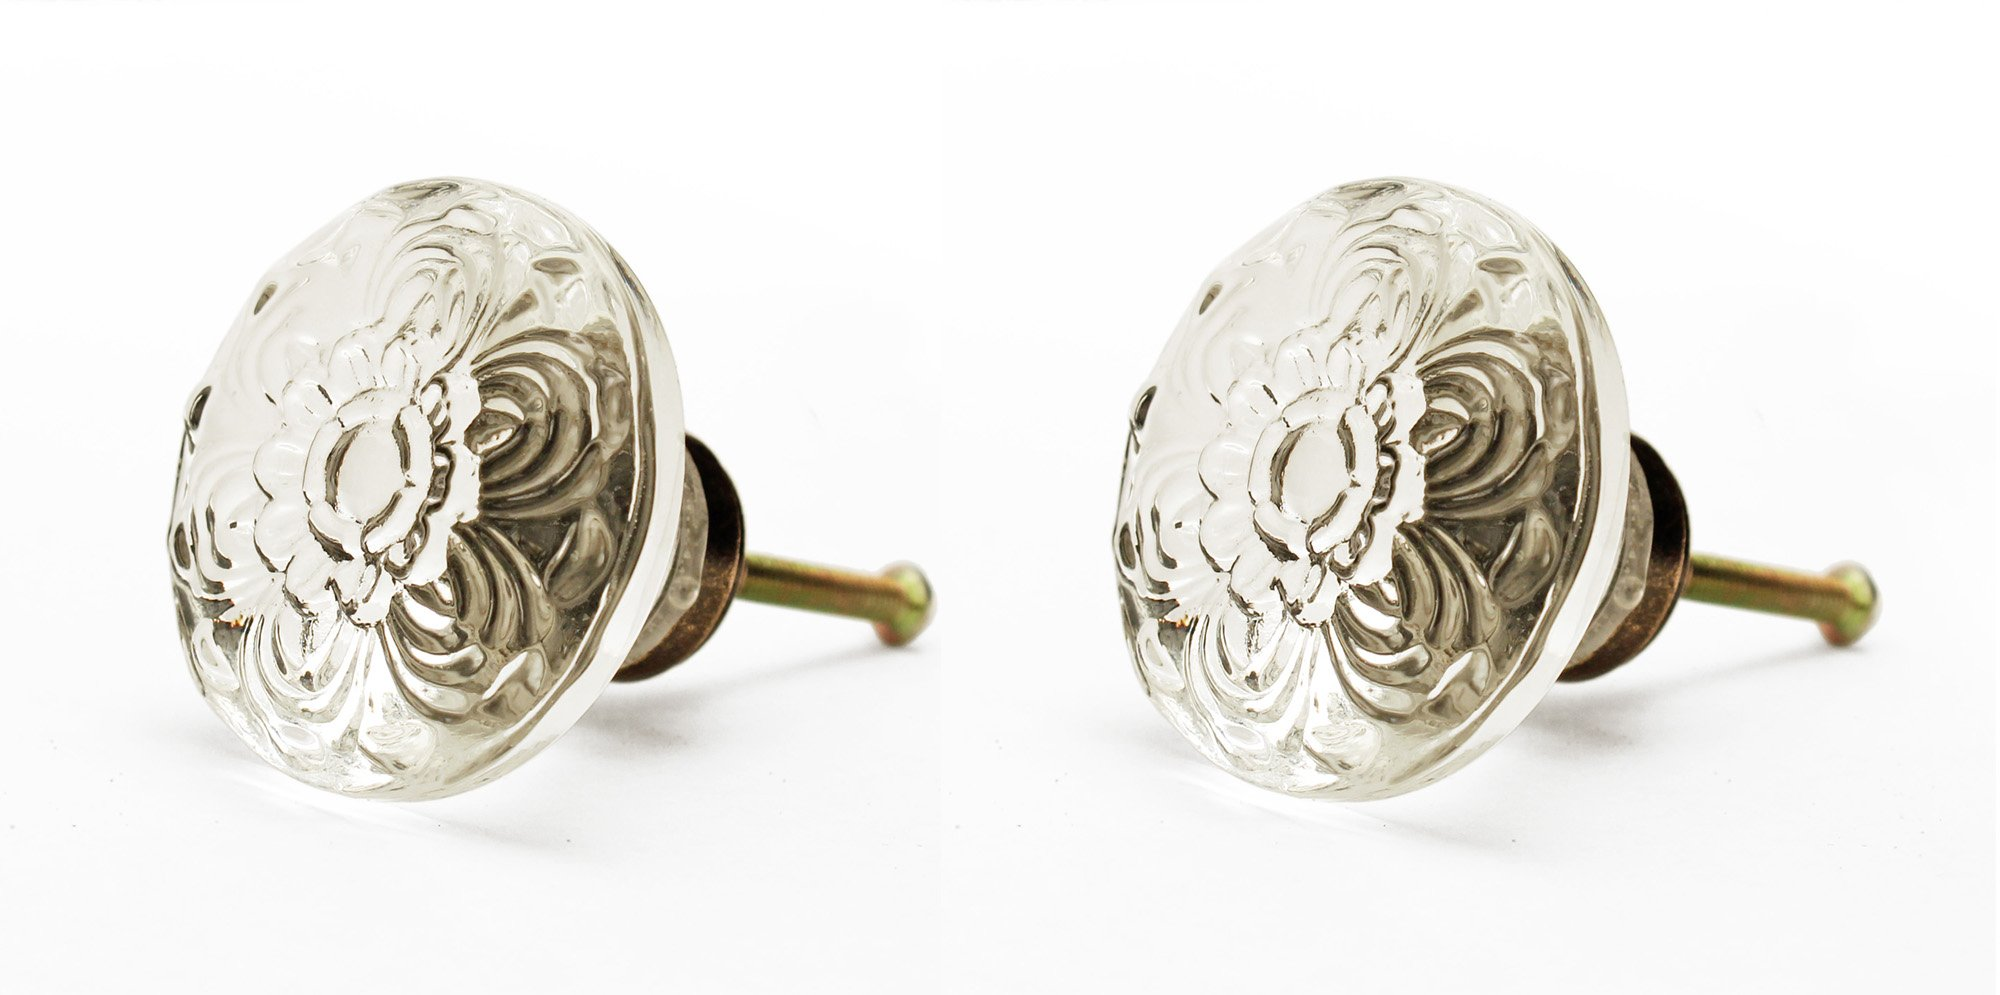 38mm Embossed Acrylic Daisy Cabinet Knobs with Antique Brass Hardware (Set of 2)